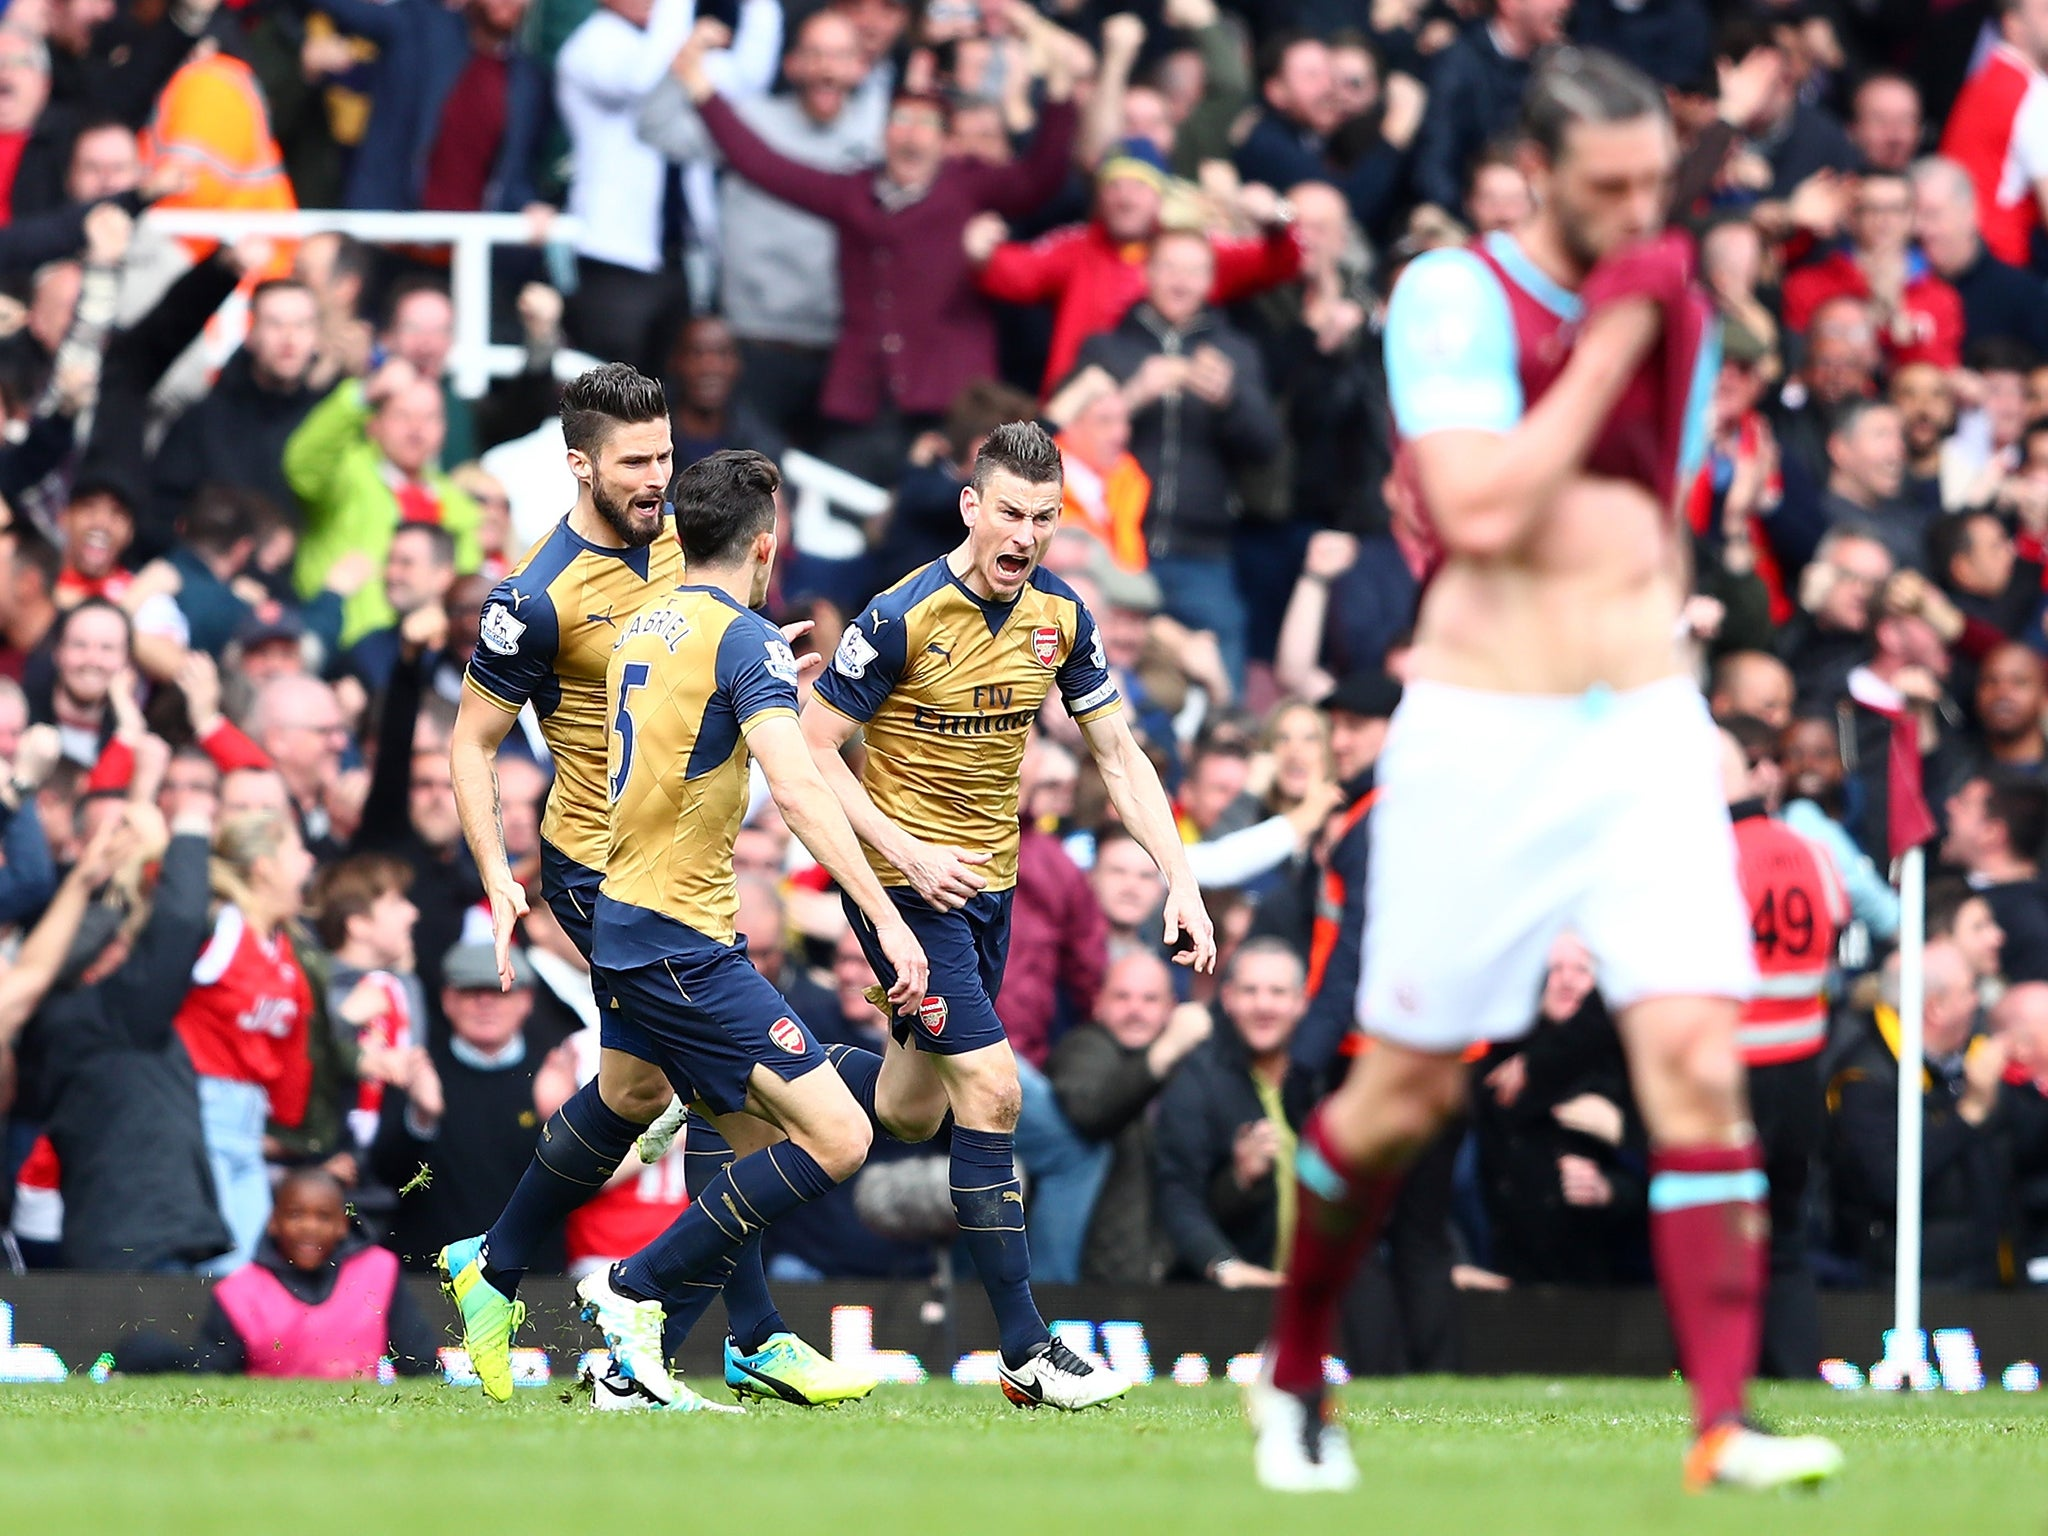 West Ham vs Arsenal match report: Andy Carroll scores hat-trick but Laurent Koscielny earns Gunners a point